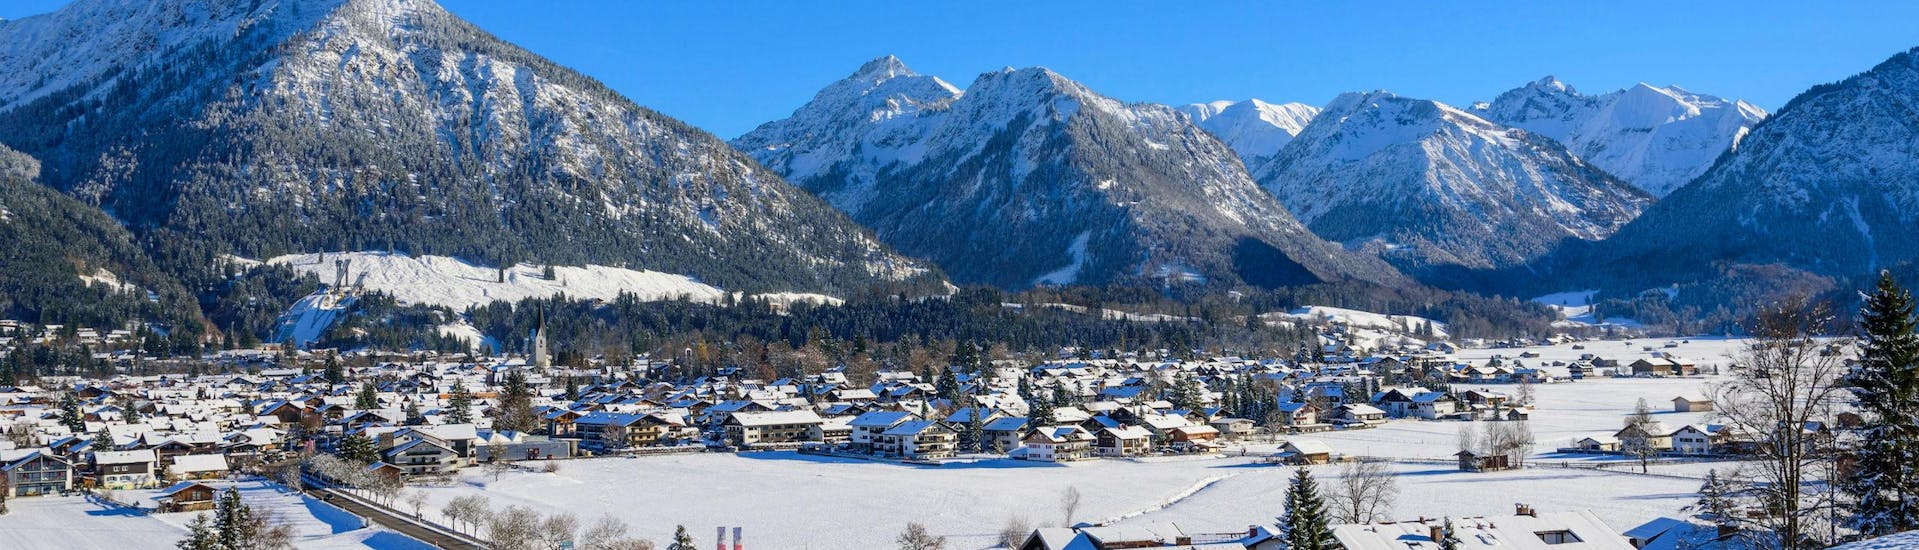 A view of the Fellhorn/Kanzelwand near Oberstdorf, a popular ski resort nestled between the Bavarian mountains, where local ski schools offer a range of different types of ski lessons.